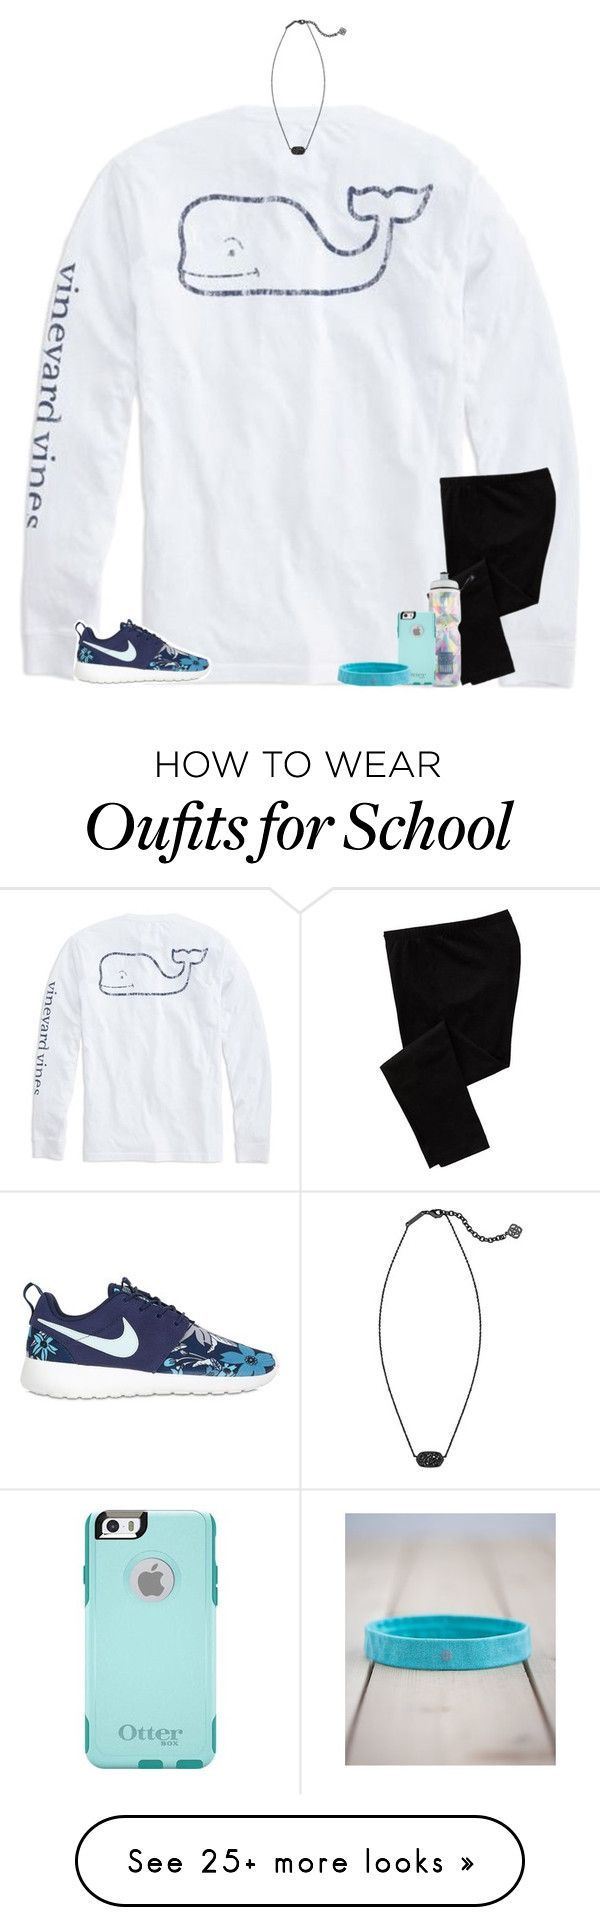 """ew school tomorrow"" by secfashion13 on Polyvore featuring Vineyard Vines, Old Navy, NIKE, Kendra Scott, Victoria's Secret, OtterBox and lululemon"